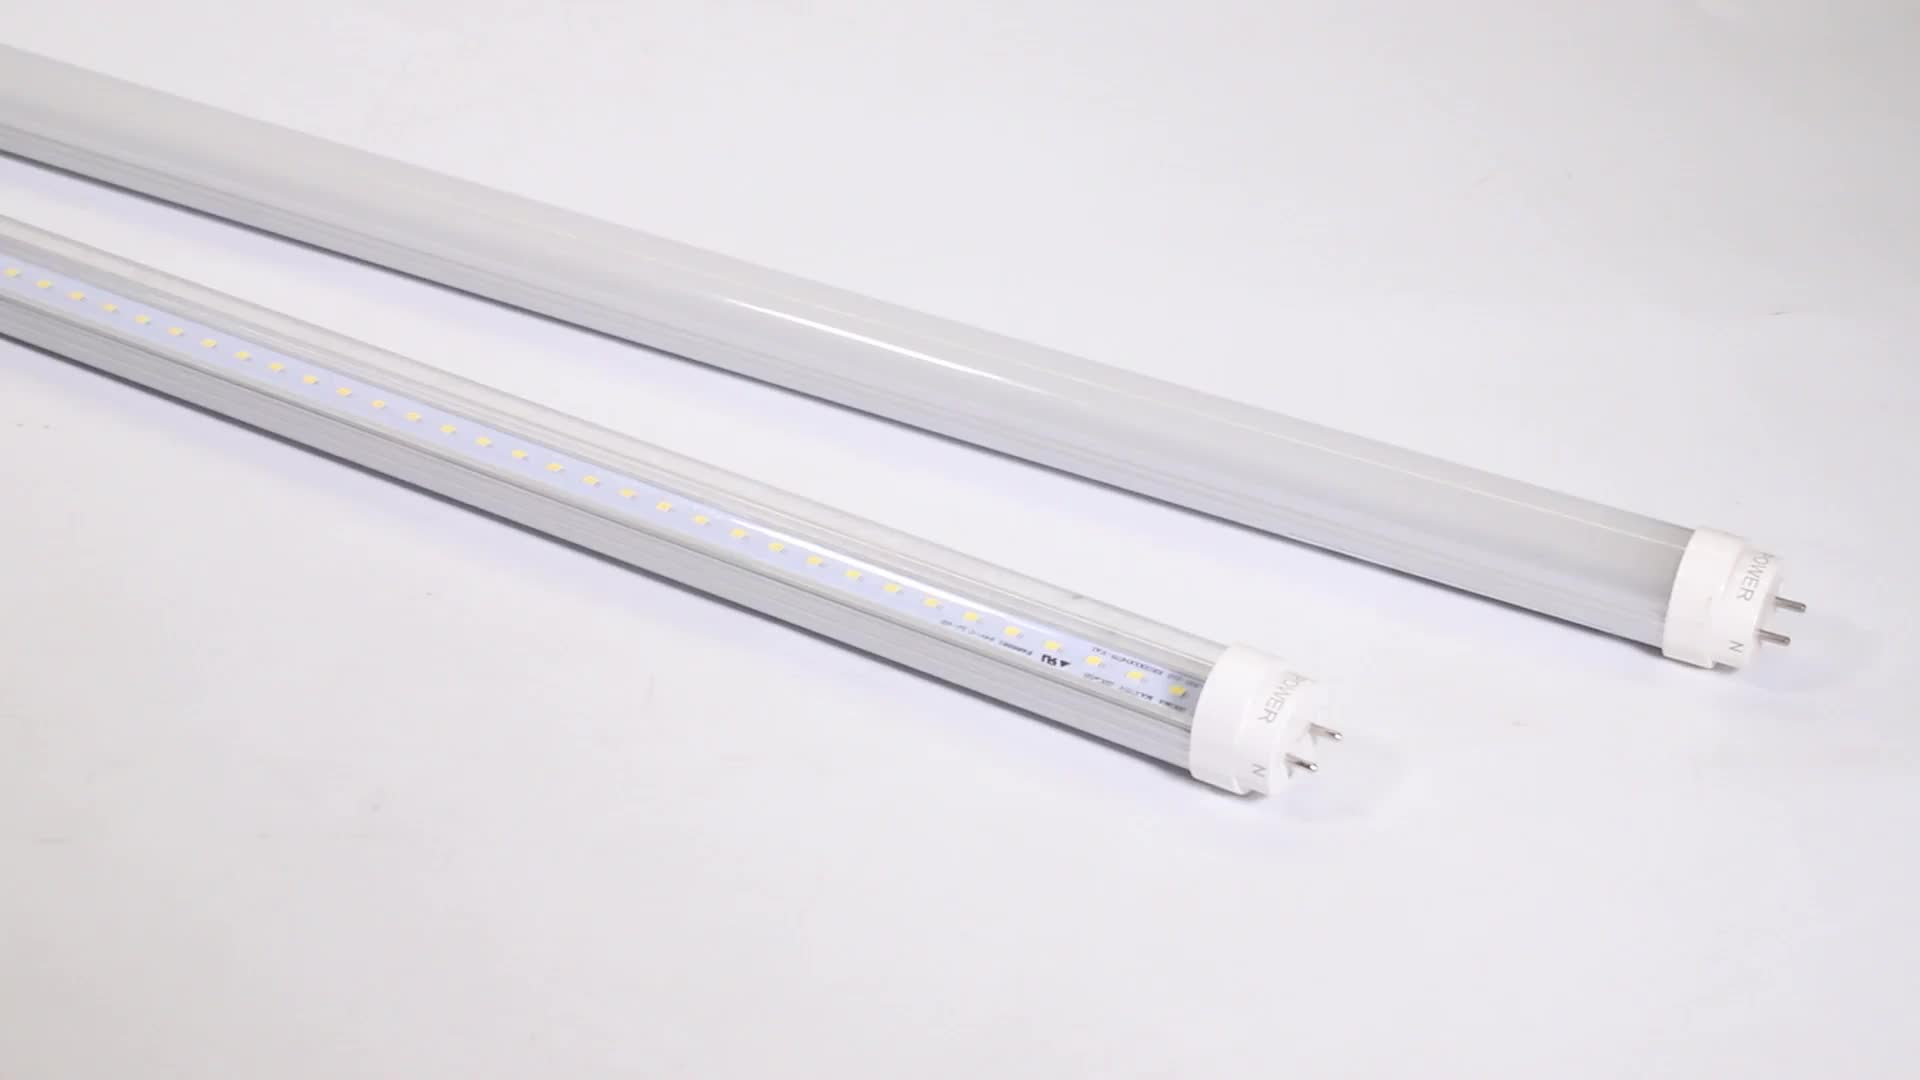 Hot sale CE led tube t8 16w 4ft 1200mm with G13 for indoor lighting 6000k Cool white SMD2835 tube light fixture for projects